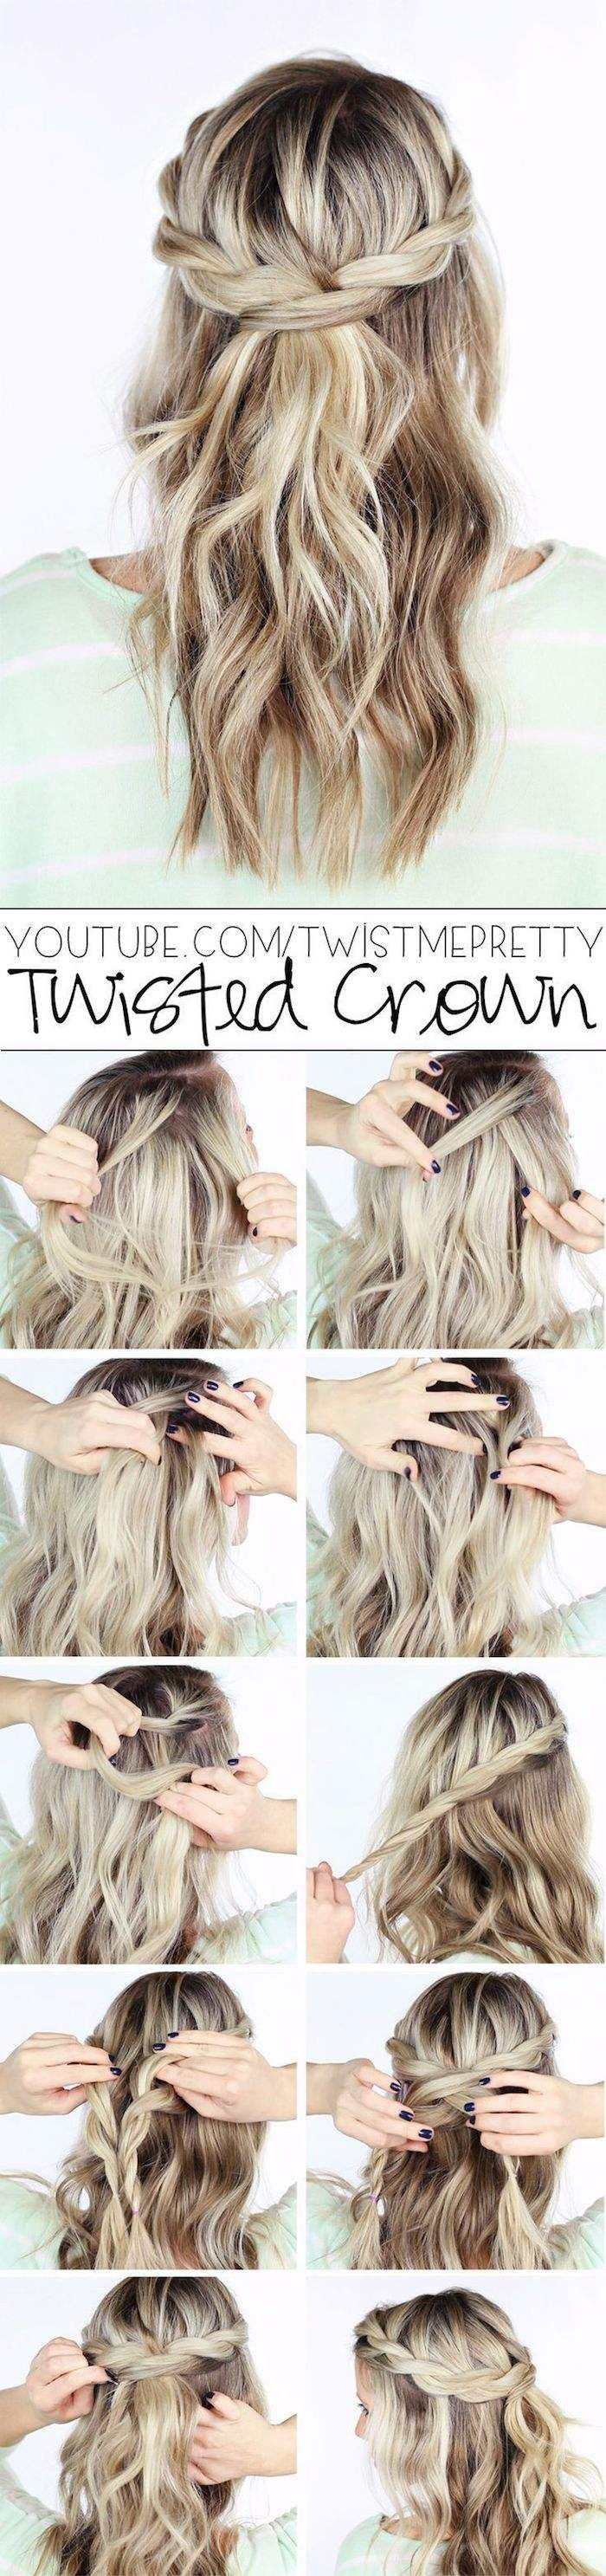 Half Up Half Down Wedding Hairstyles | Check, Collection and Weddings